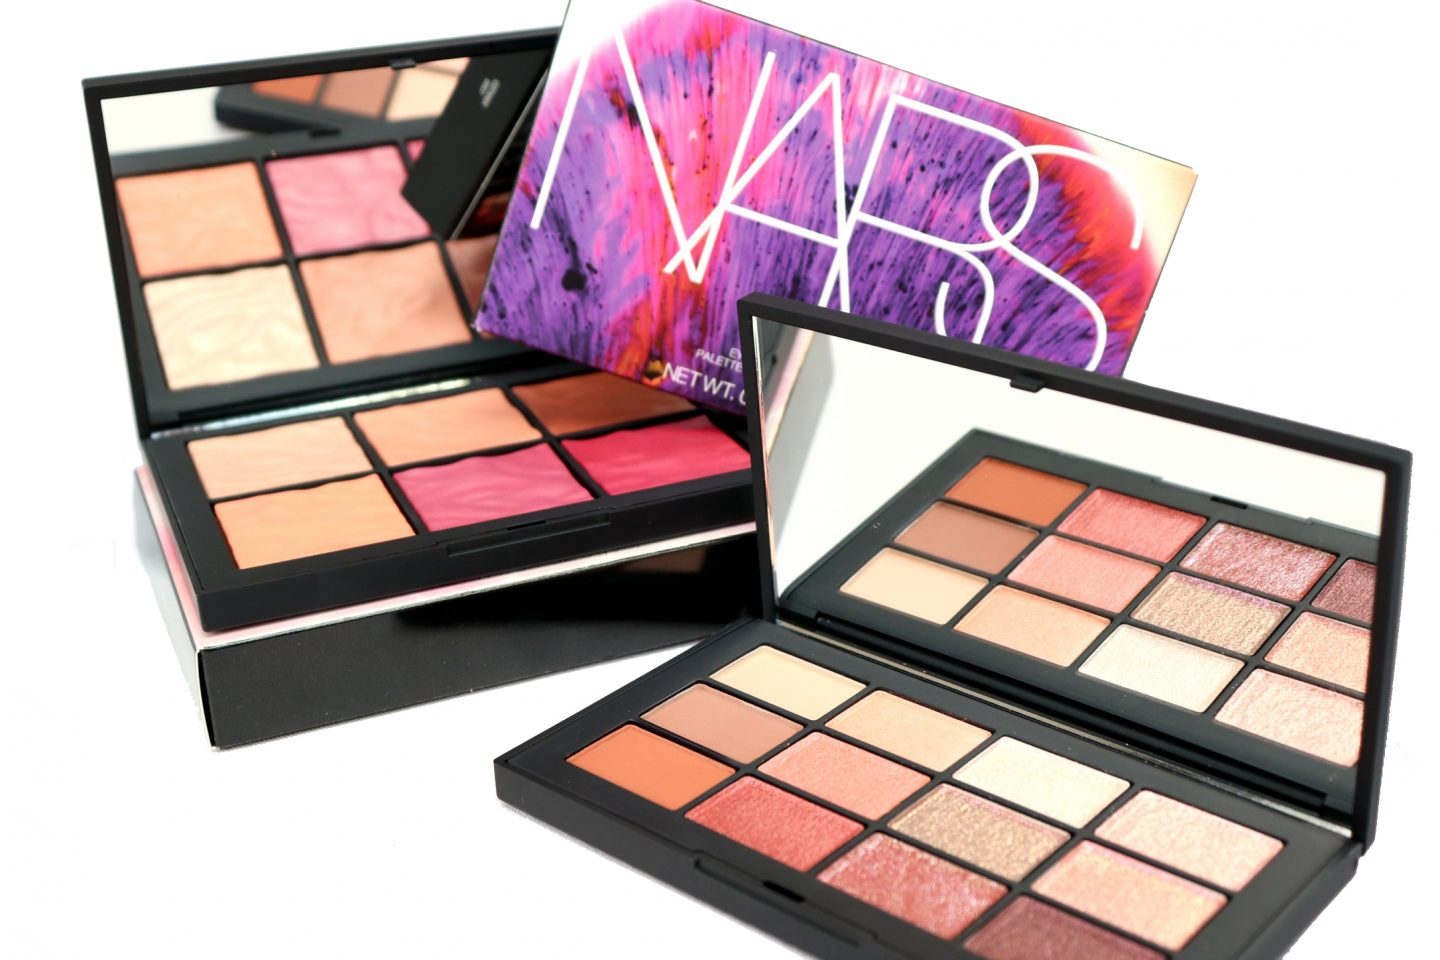 NARS Spring 2019 Palettes Review